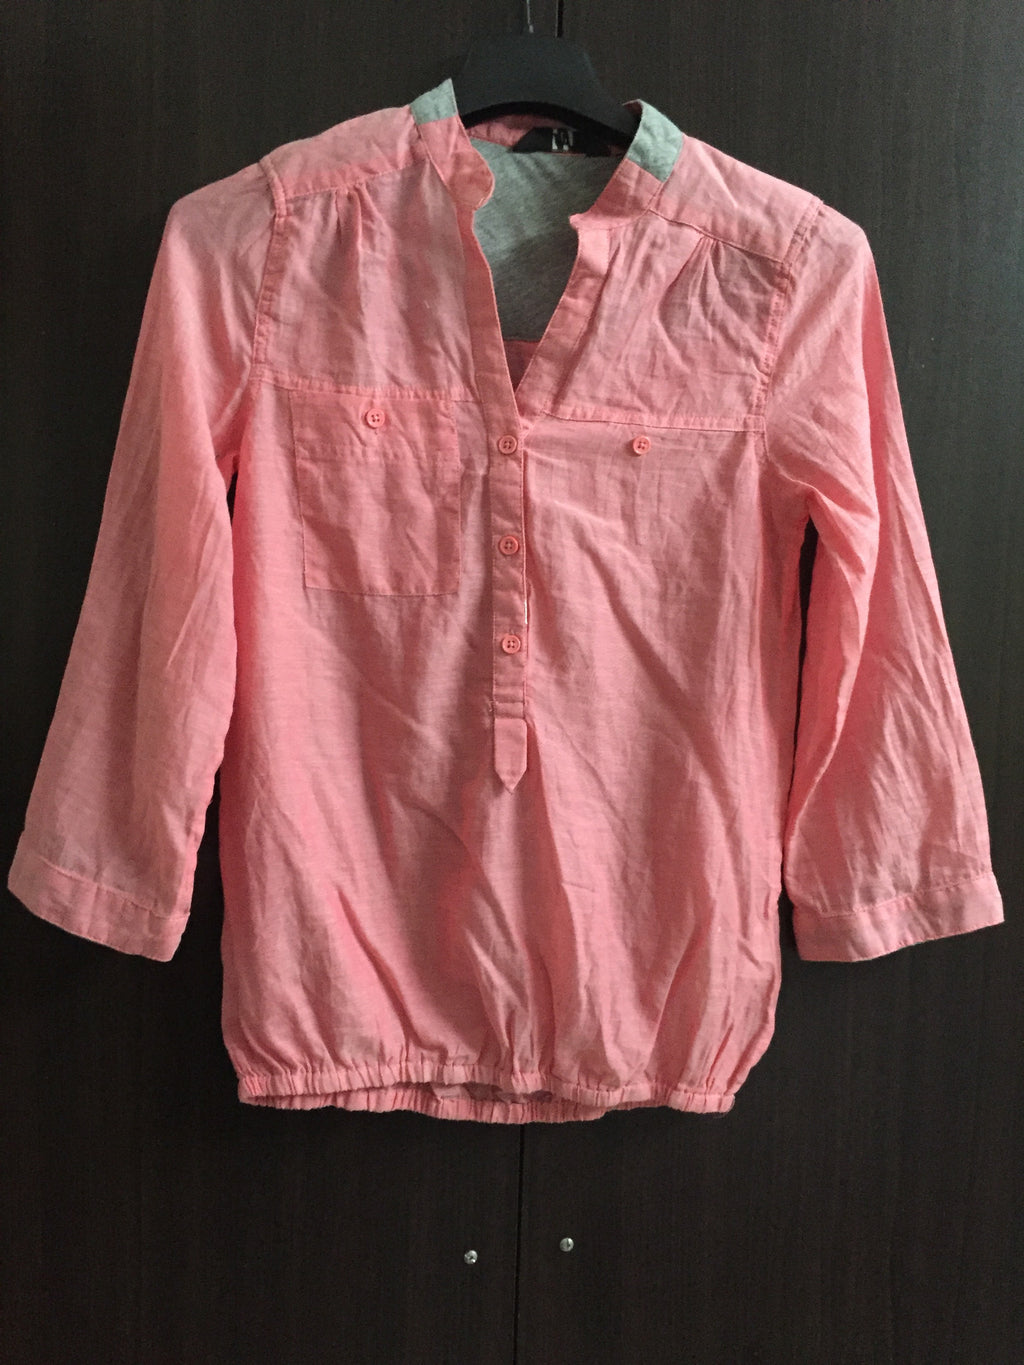 Light Pink Casual Top with few front buttons